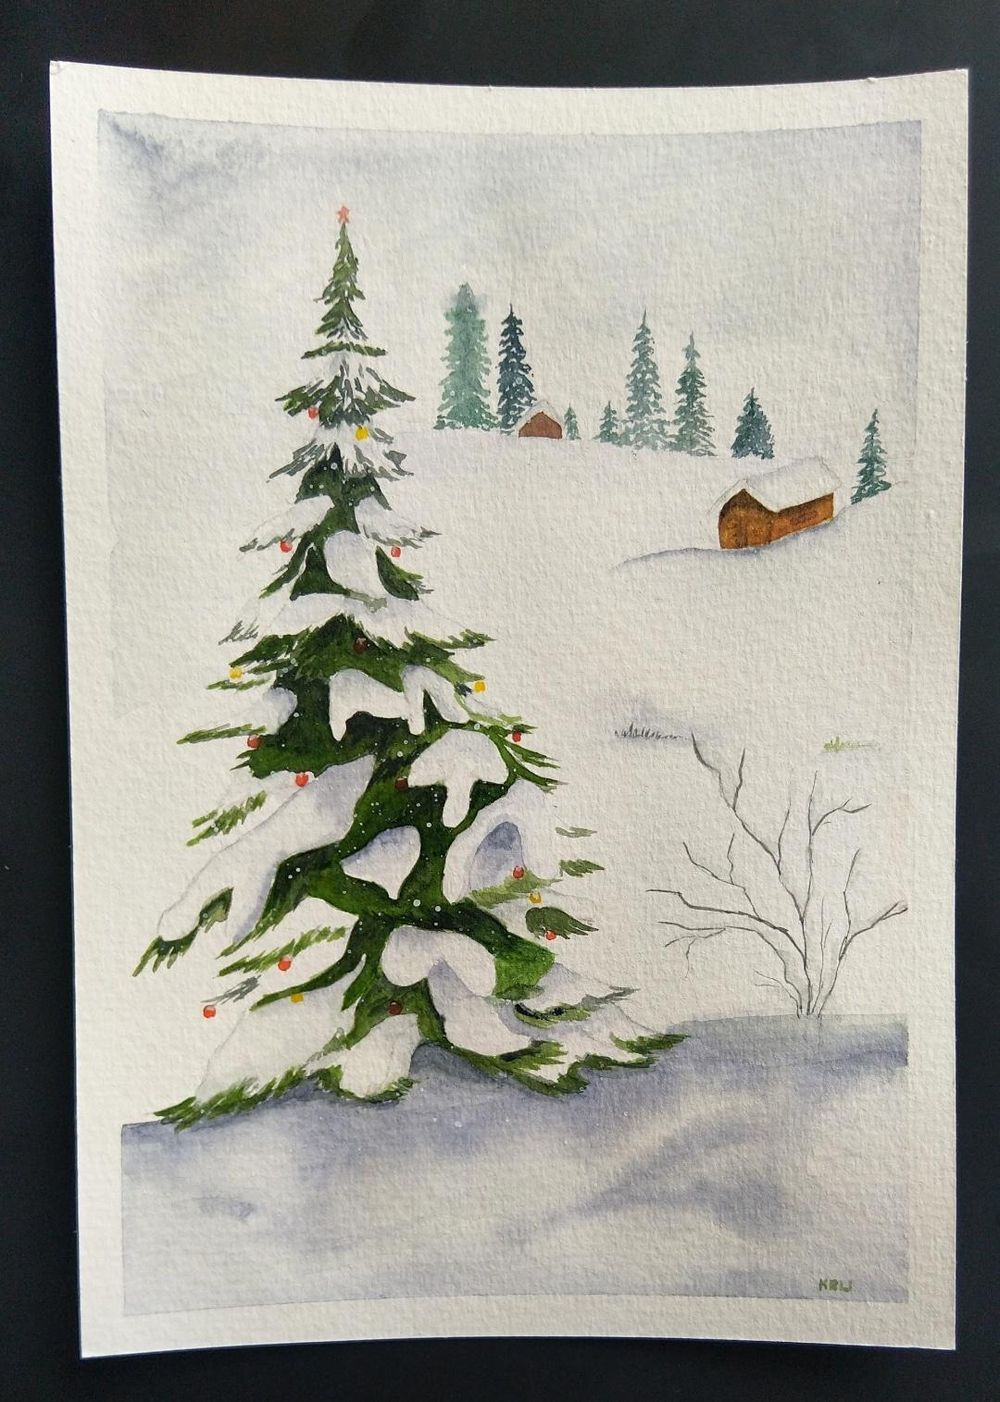 Christmas paintings - image 4 - student project